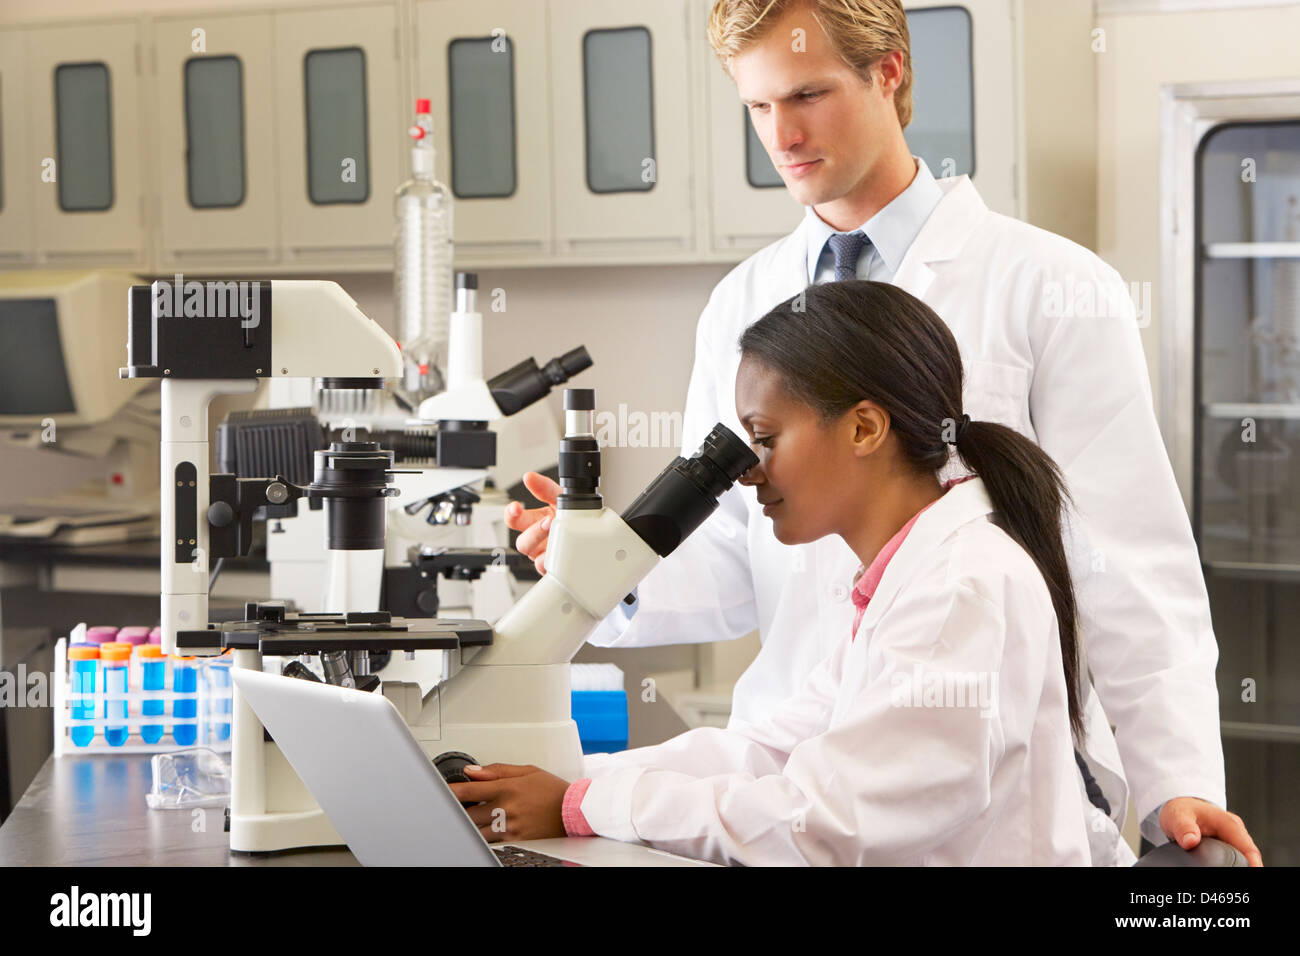 Male And Female Scientists Using Microscopes In Laboratory - Stock Image